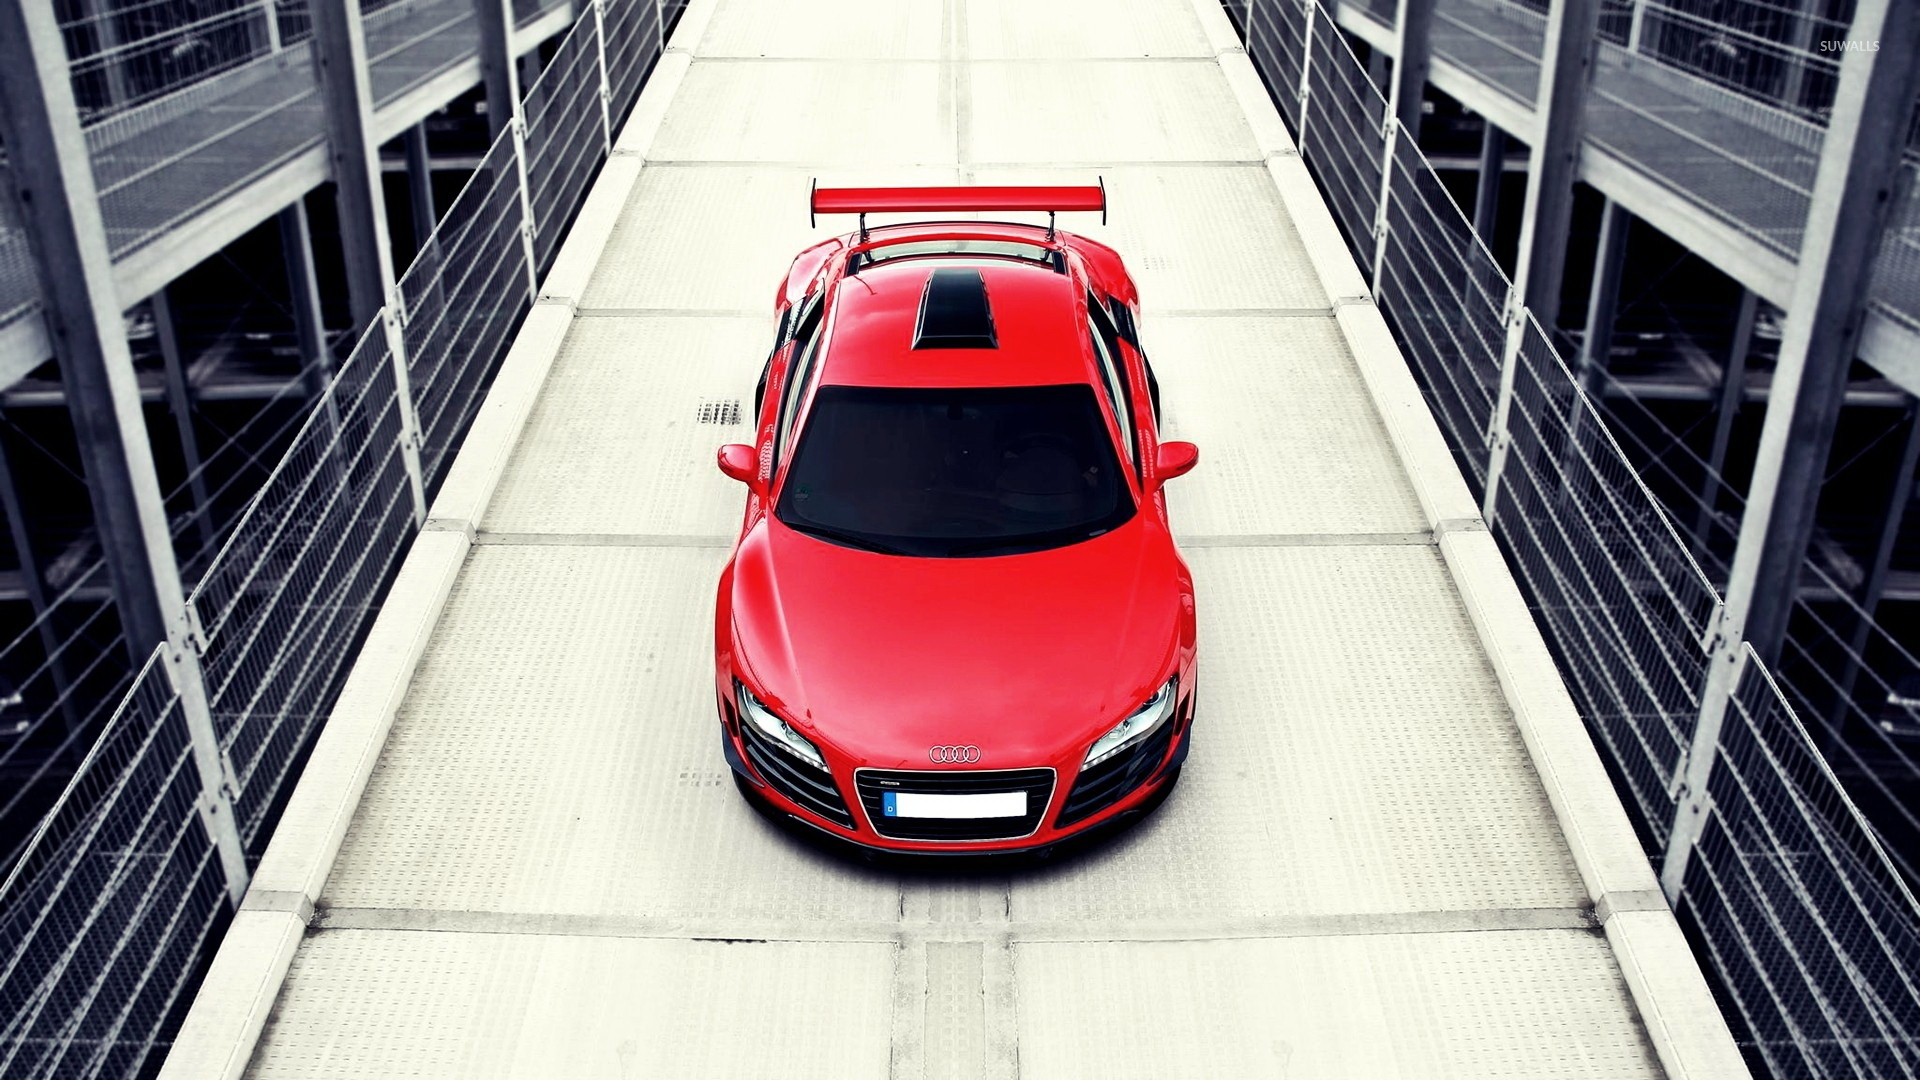 Audi R8 Top View Wallpaper